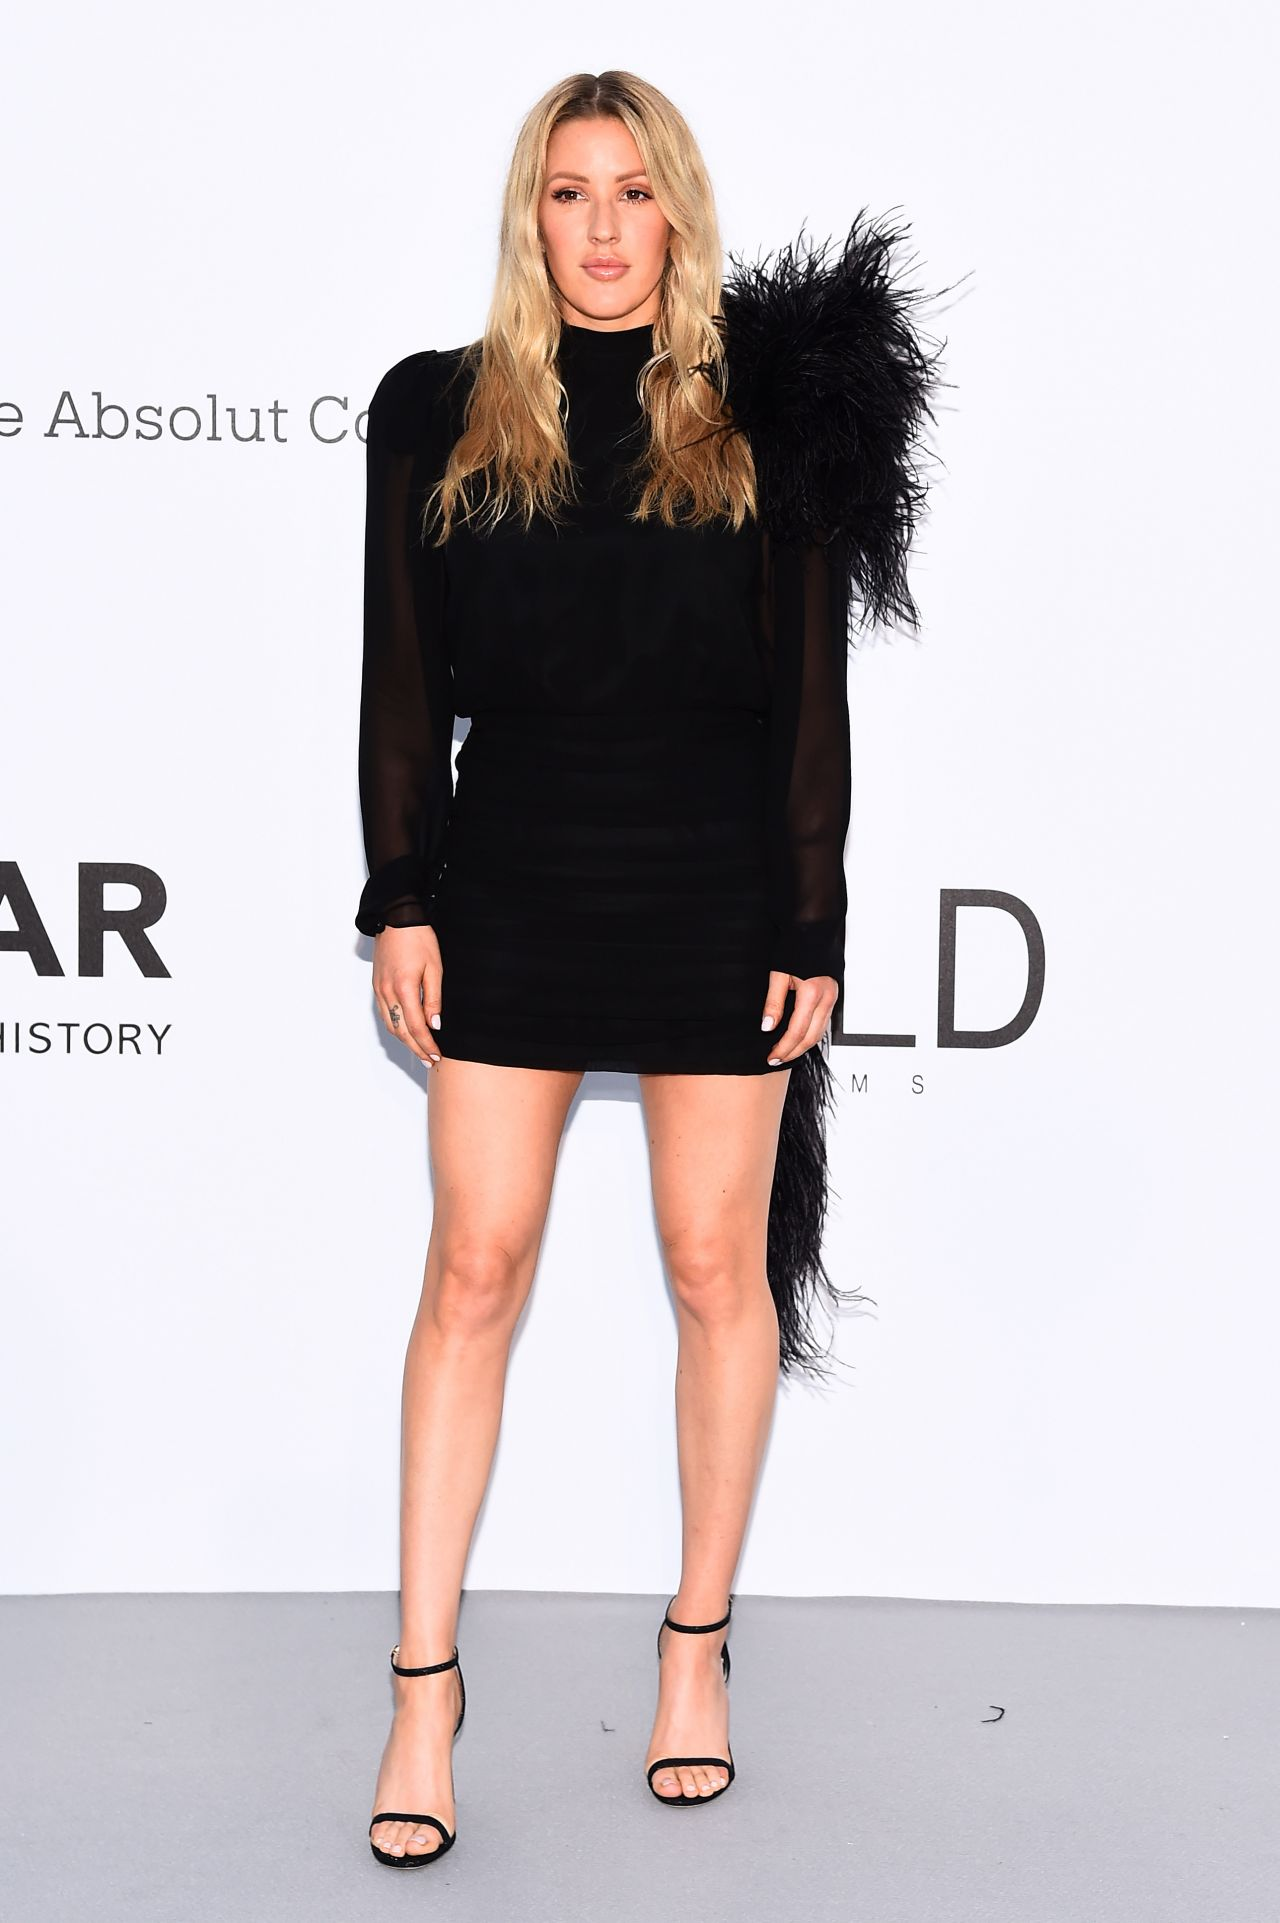 http://celebmafia.com/wp-content/uploads/2018/05/ellie-goulding-amfar-s-cinema-against-aids-gala-in-cannes-05-17-2018-6.jpg